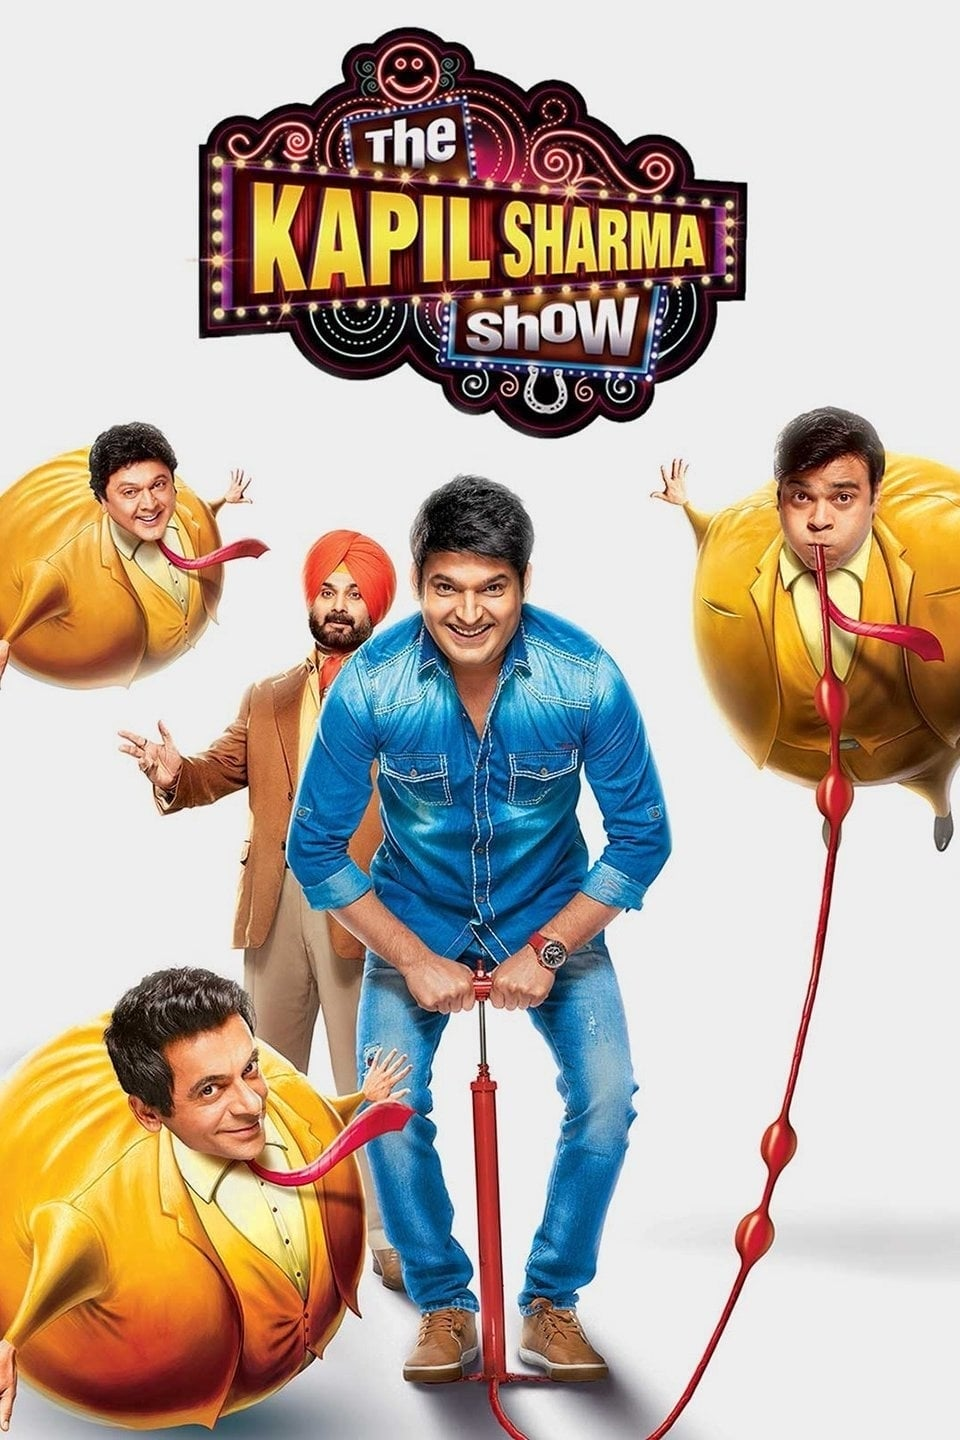 The Kapil Sharma Show (2019) Season 2 [10TH Nov 2019] 576p HDTV | Full Episode